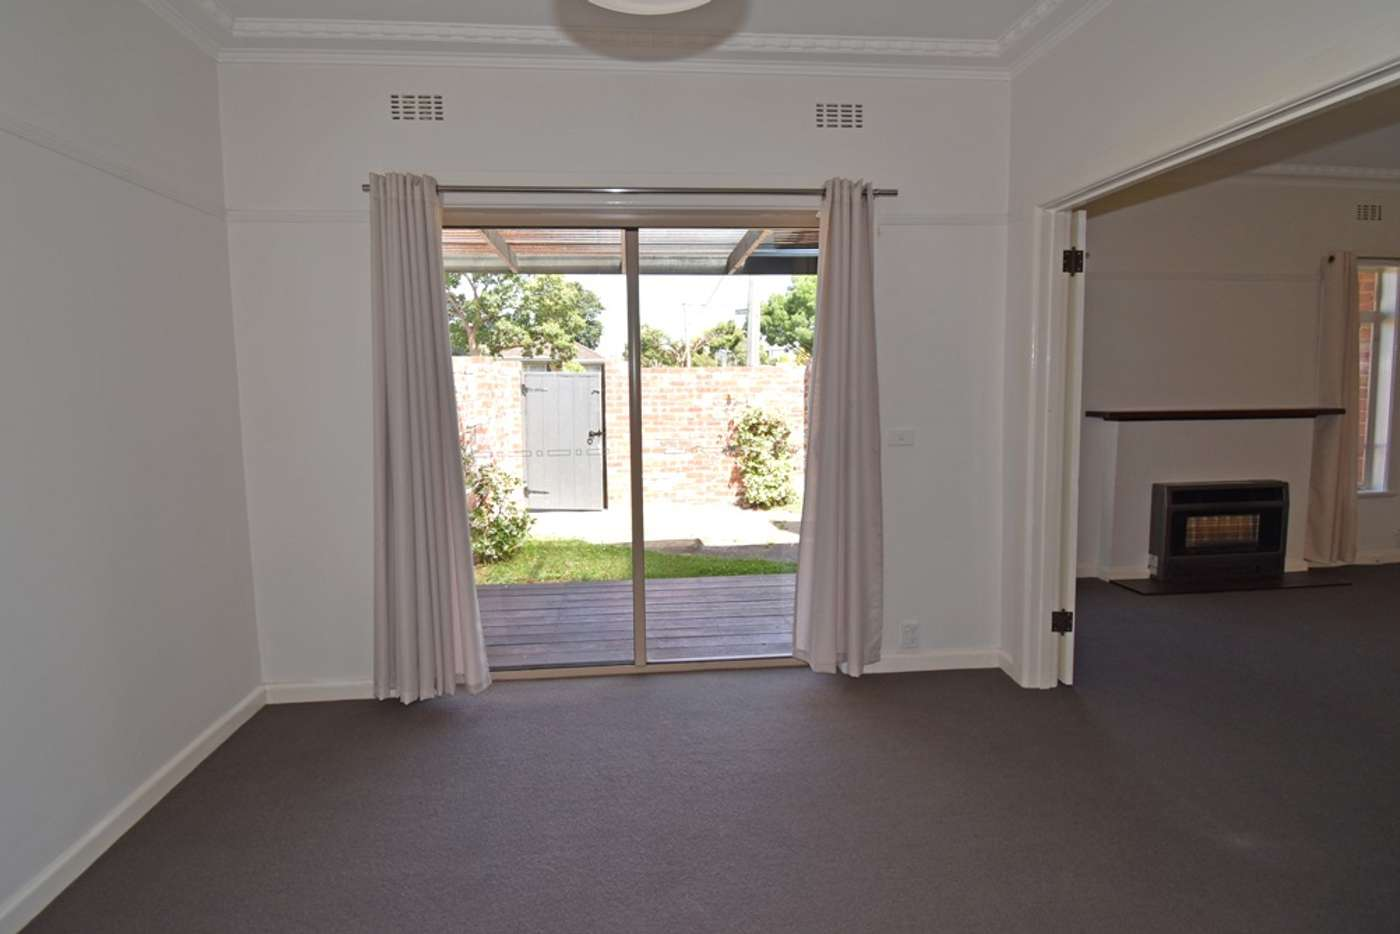 Sixth view of Homely house listing, 56 Jasper Road, Bentleigh VIC 3204